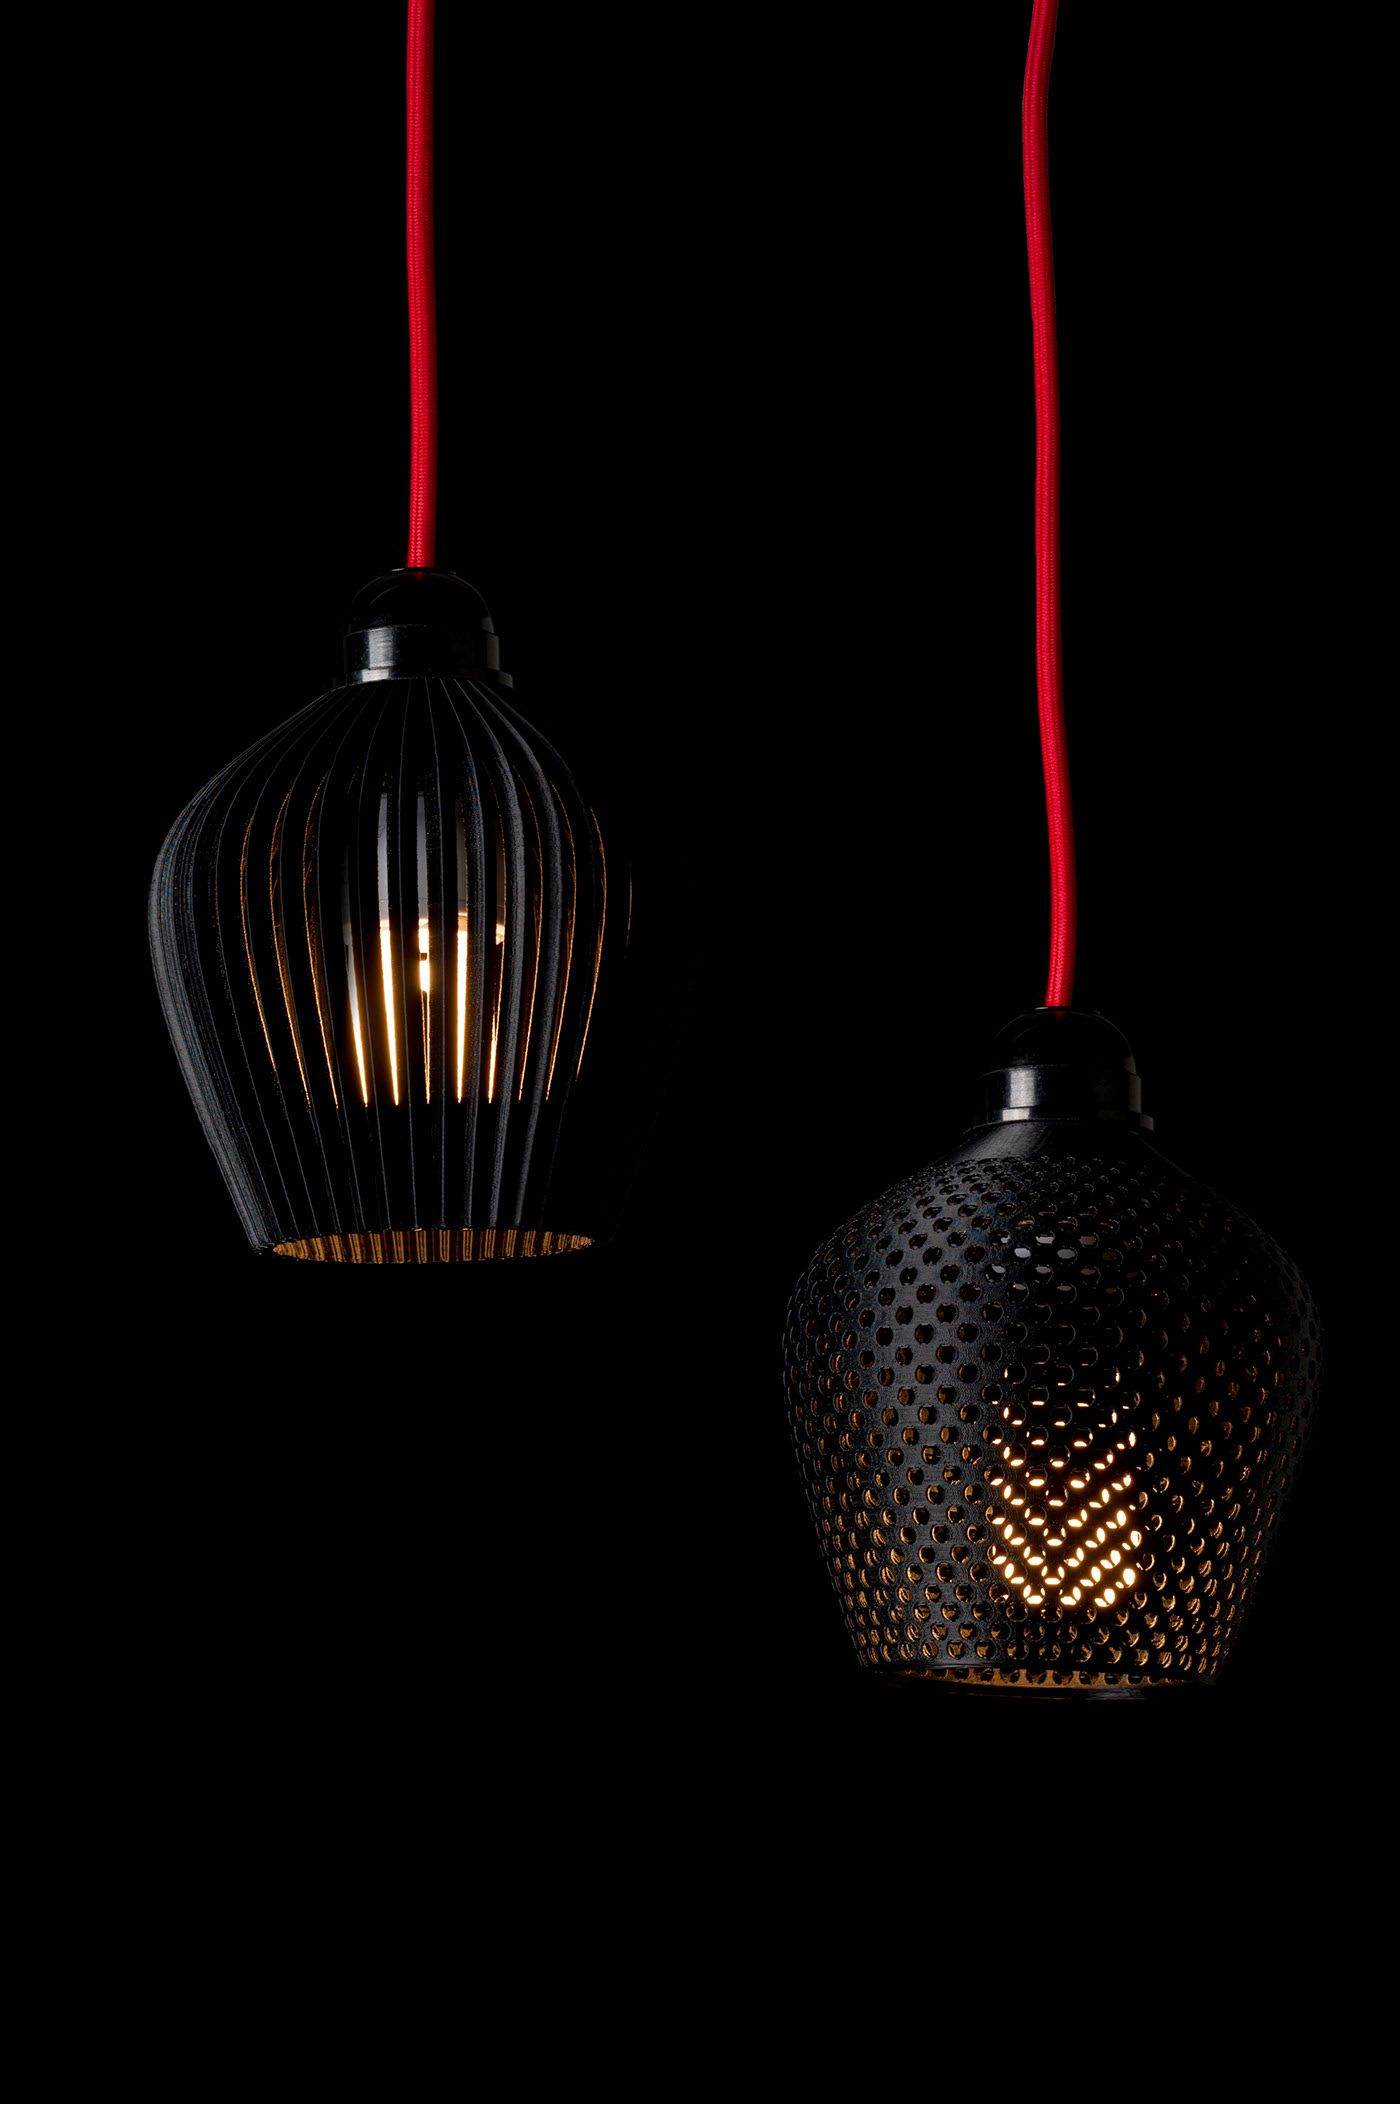 3d Printed Lamp Shade Collection On Behance In 2020 3d Printed Objects 3d Printing Machine 3d Printed Furniture